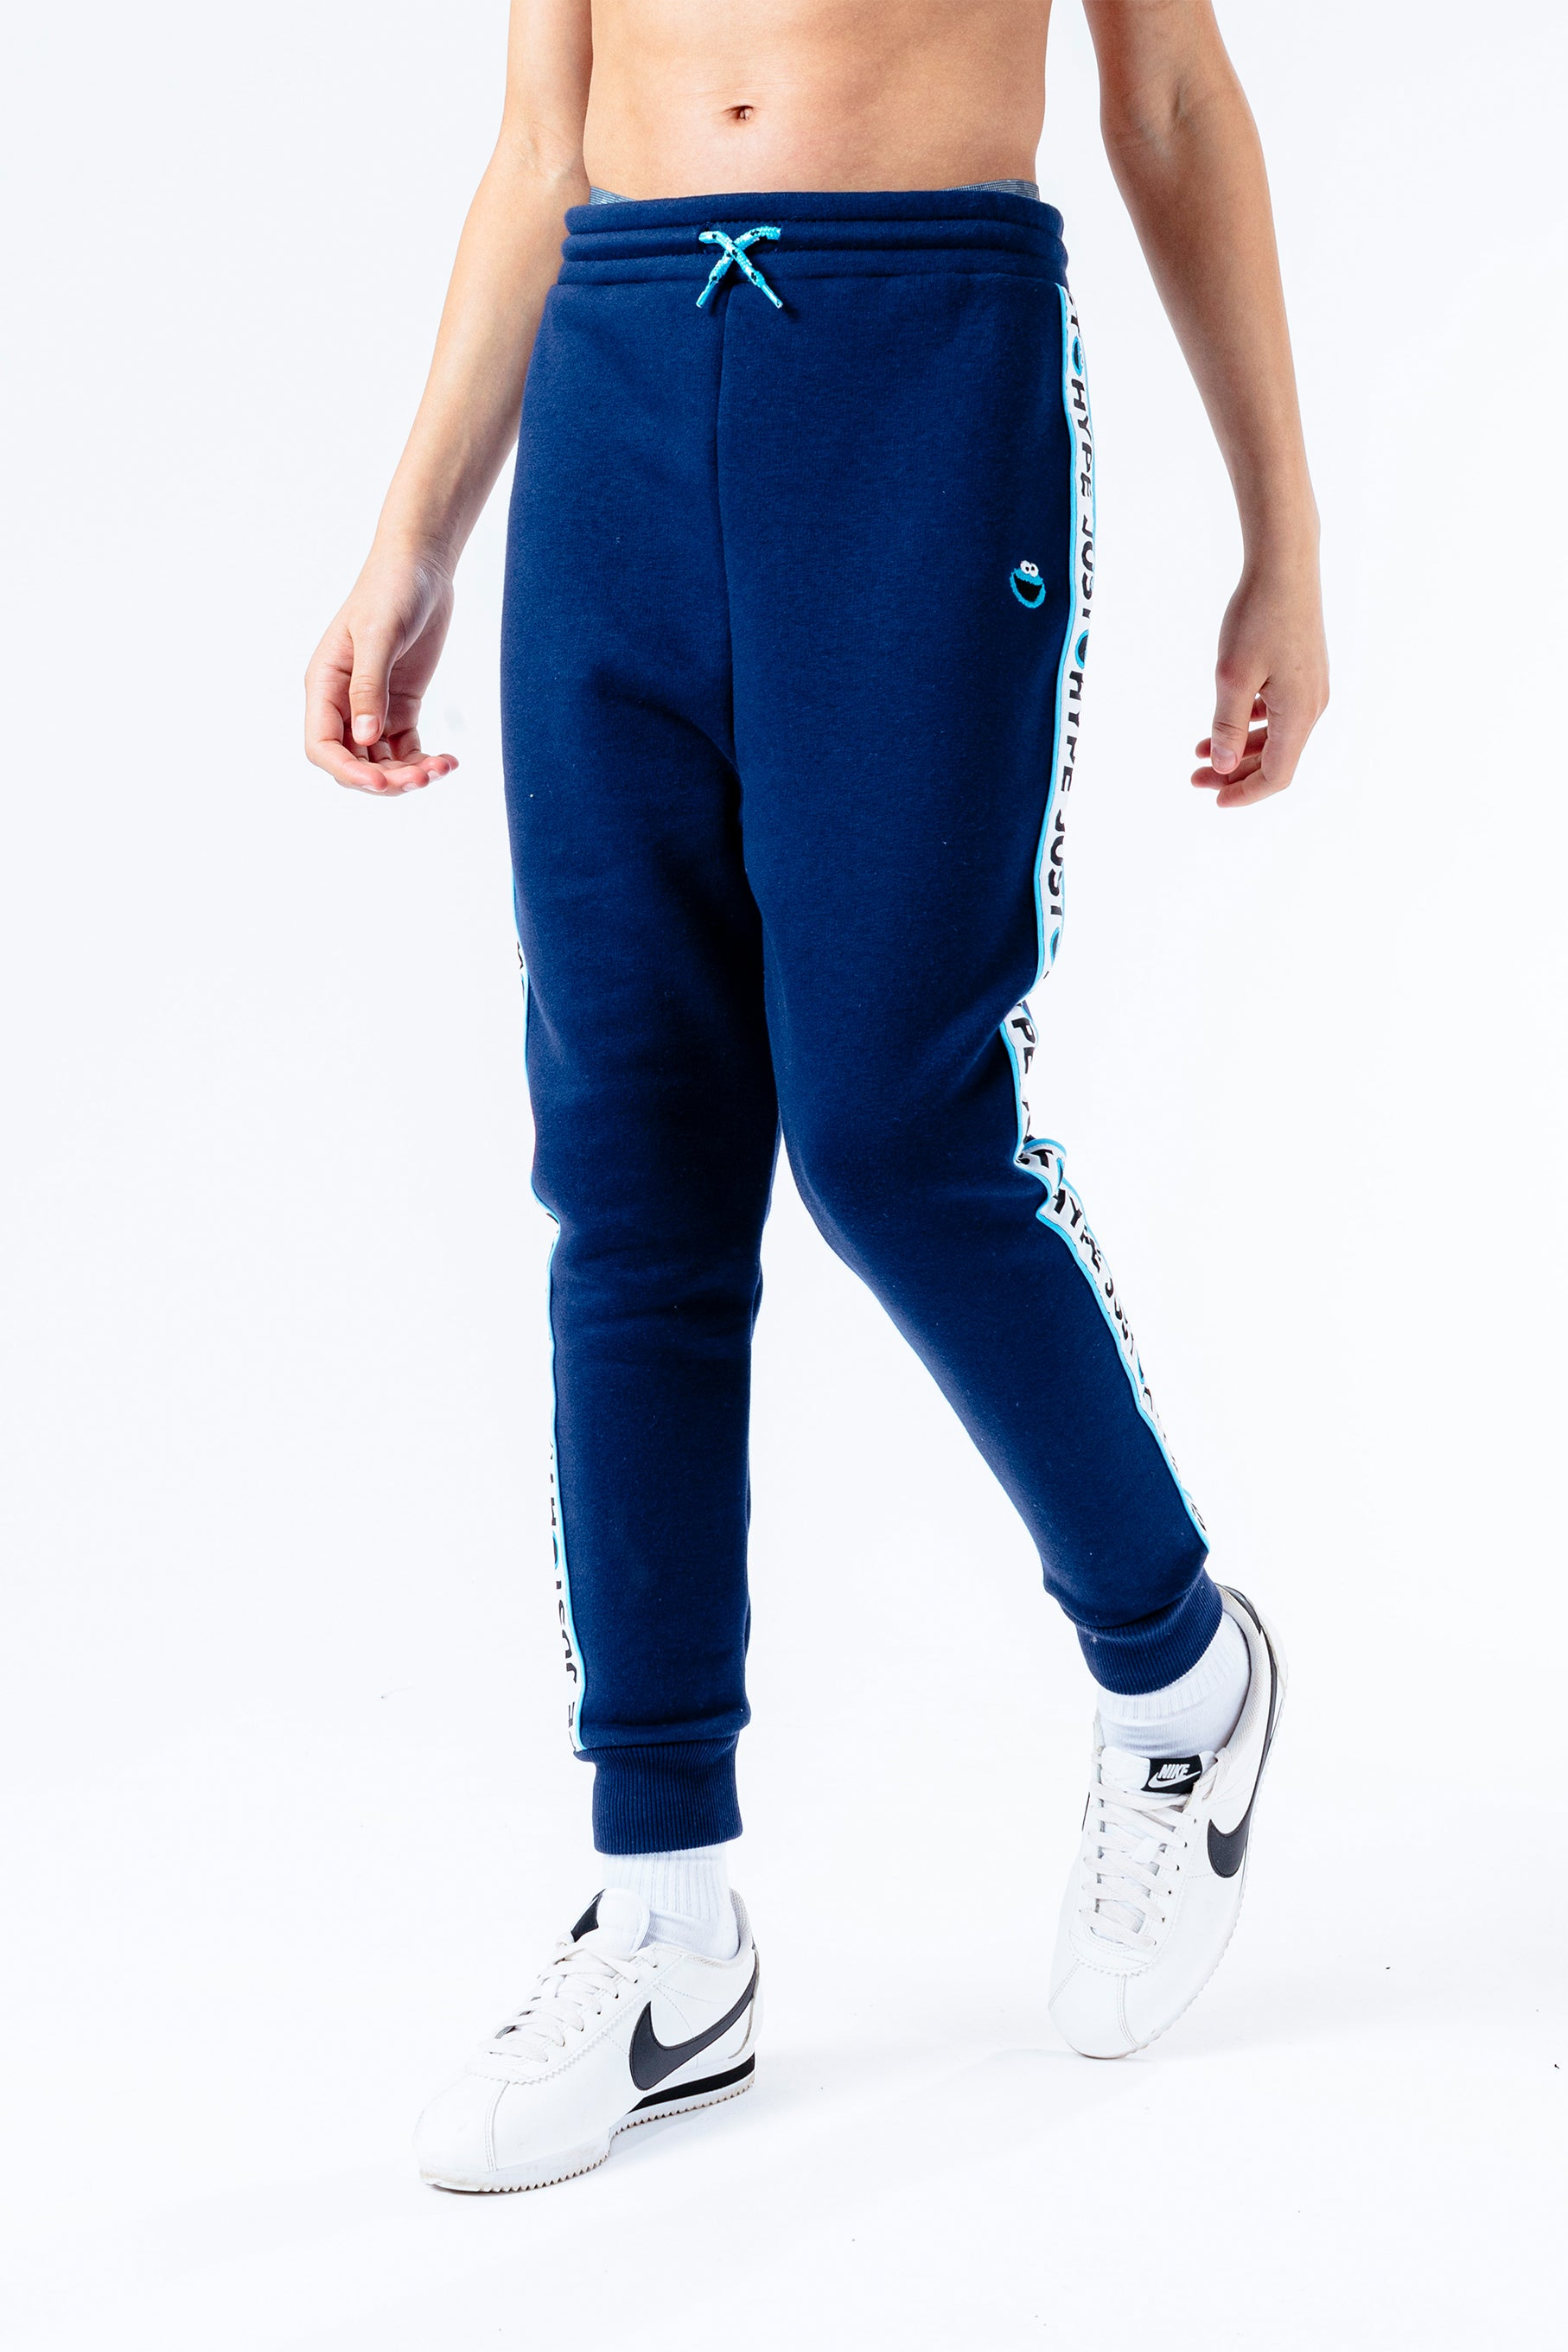 Hype X Sesame Street Cookie Monster Navy Taped Kids Navy/multi Joggers | Size 3/4Y